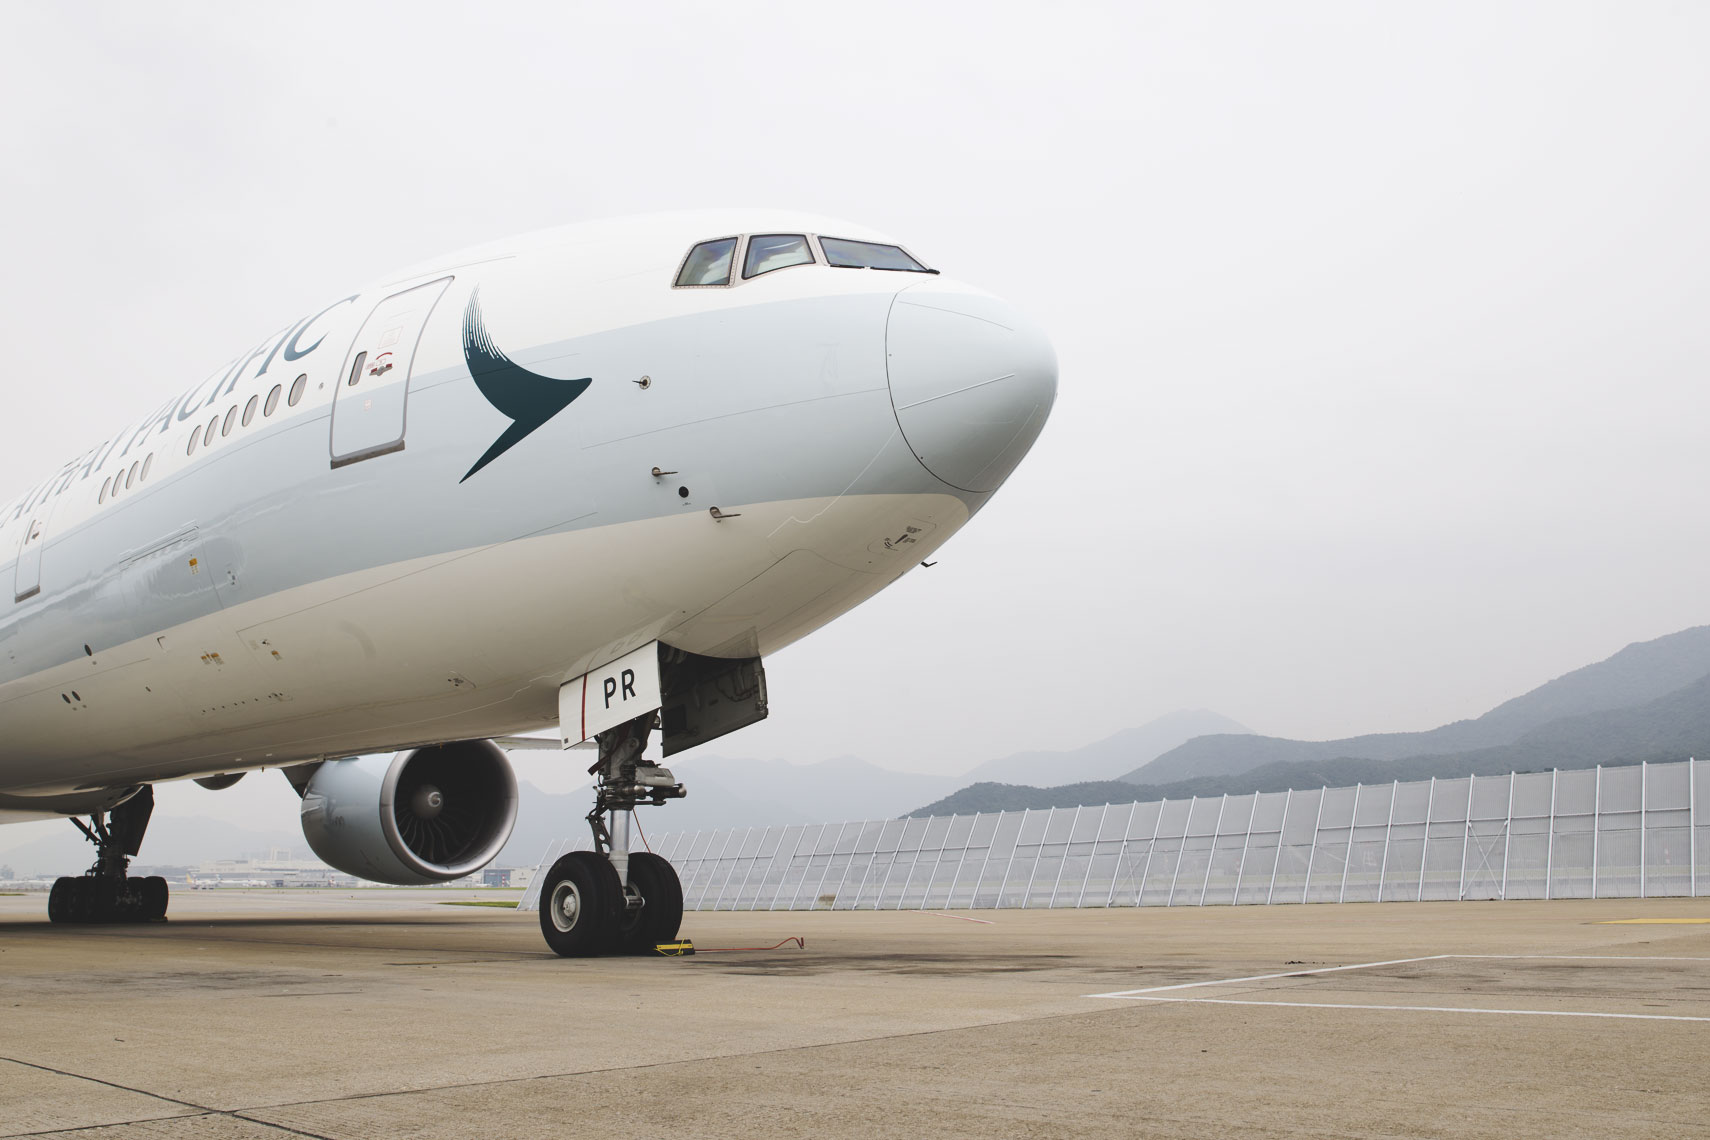 peggy-wong-photography_aviation_cathay-pacific_0120